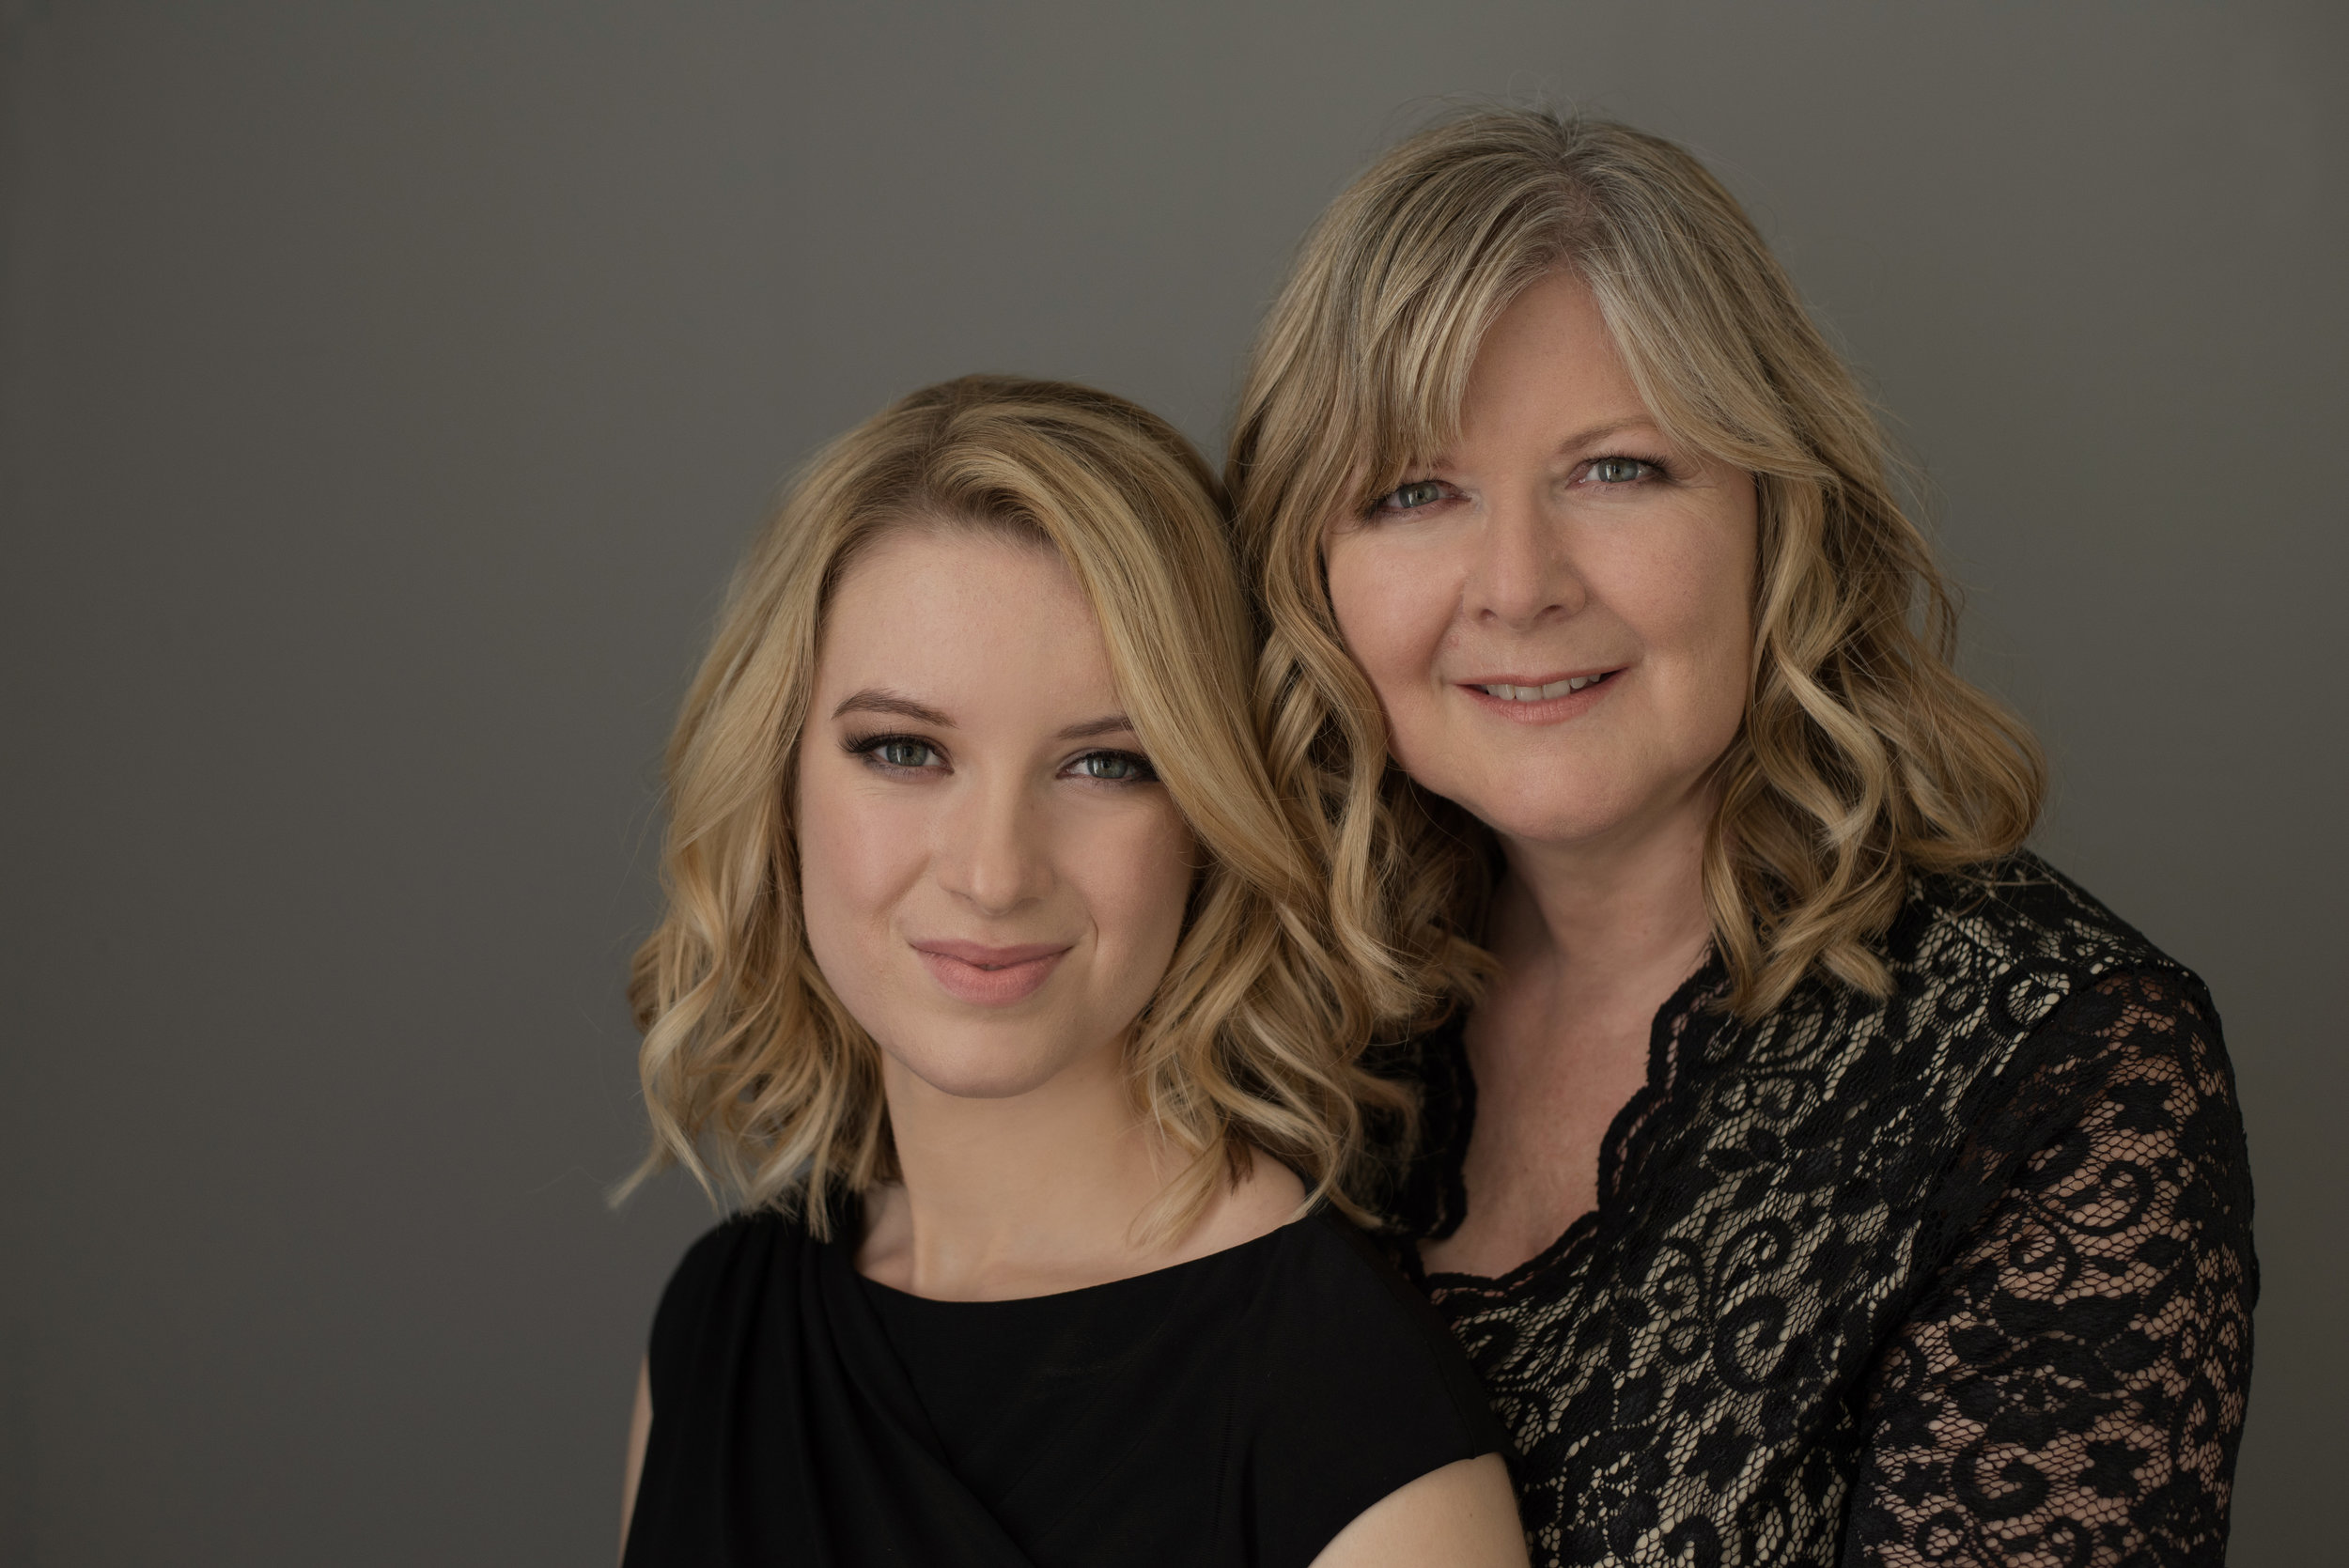 motherdaughterphotoshoot